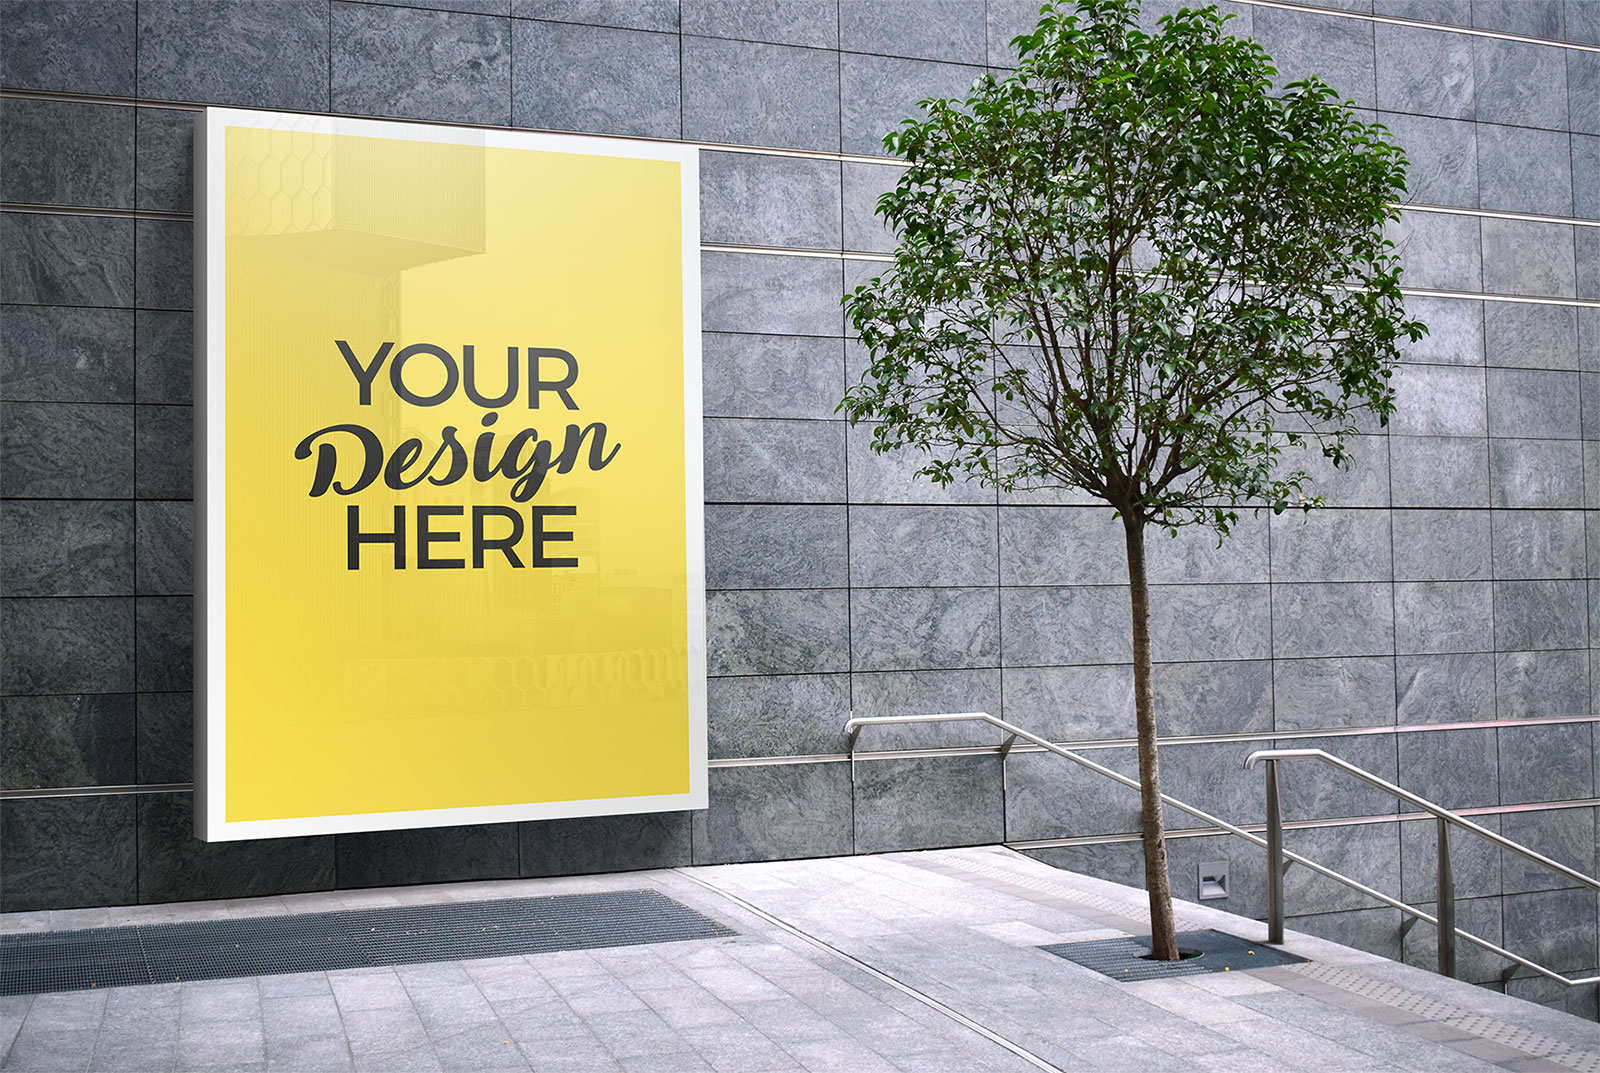 Free-Outdoor-Advertising-Wall-Mounted-Billboard-Mockup-PSD-File